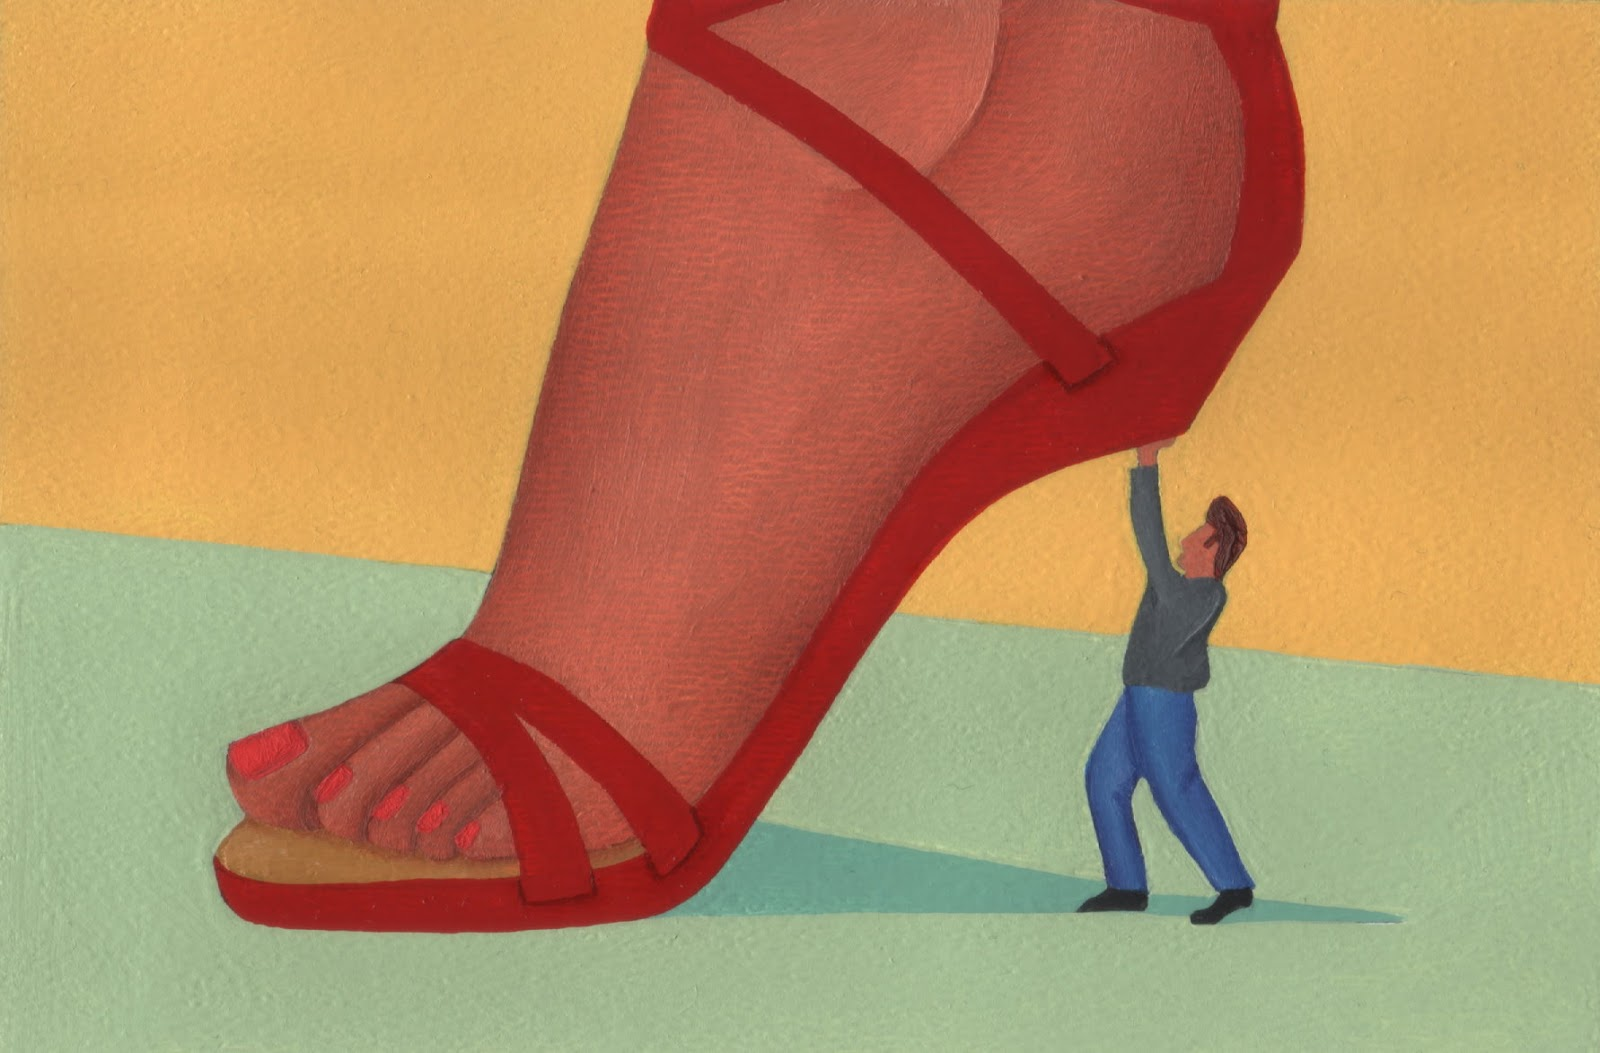 A small man holding up a woman's heel.